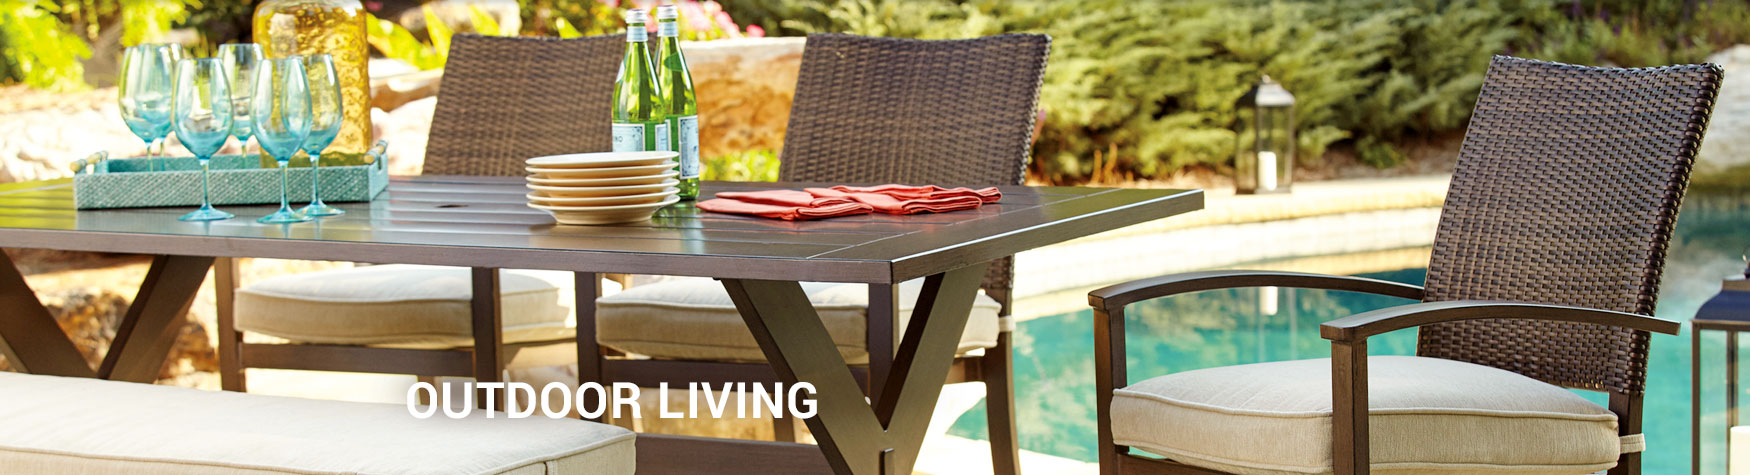 outdoor living furniture on sale in